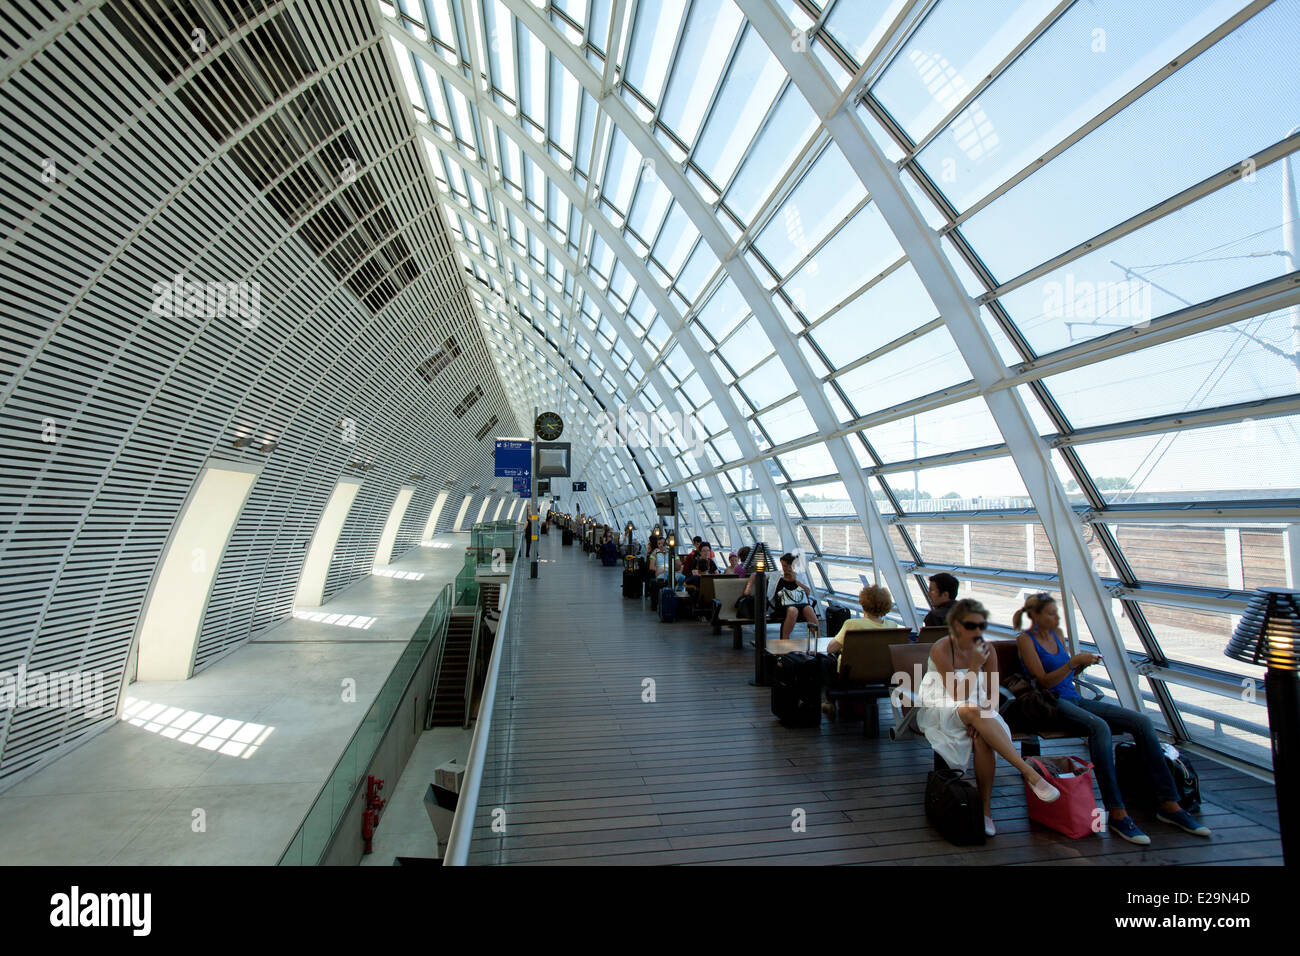 France Vaucluse Avignon Tgv Train Station By Architects Jean Marie Stock Photo Alamy